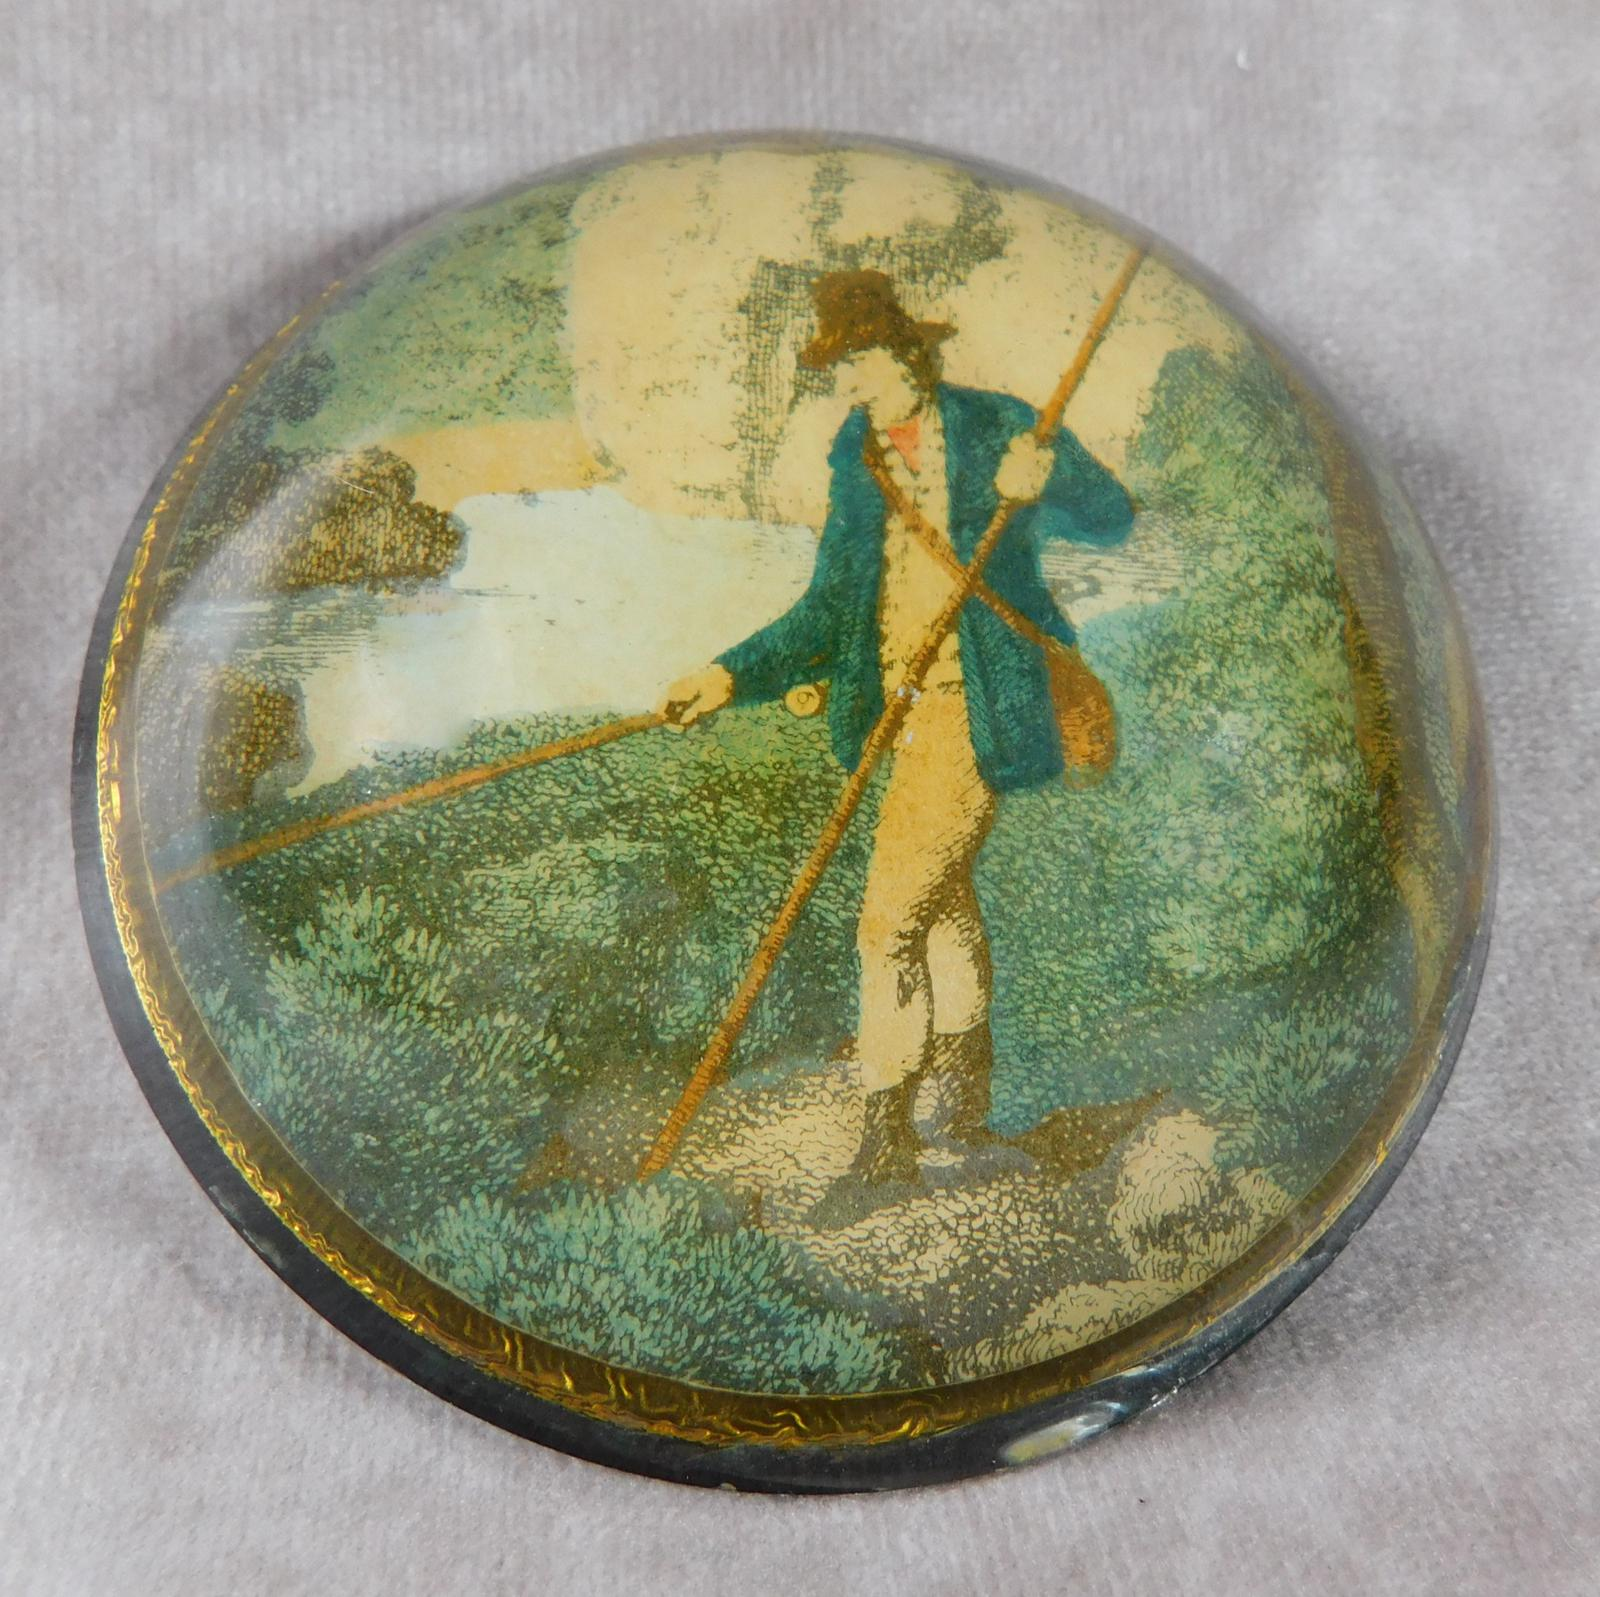 19th Century Convex Paperweight (1 of 1)